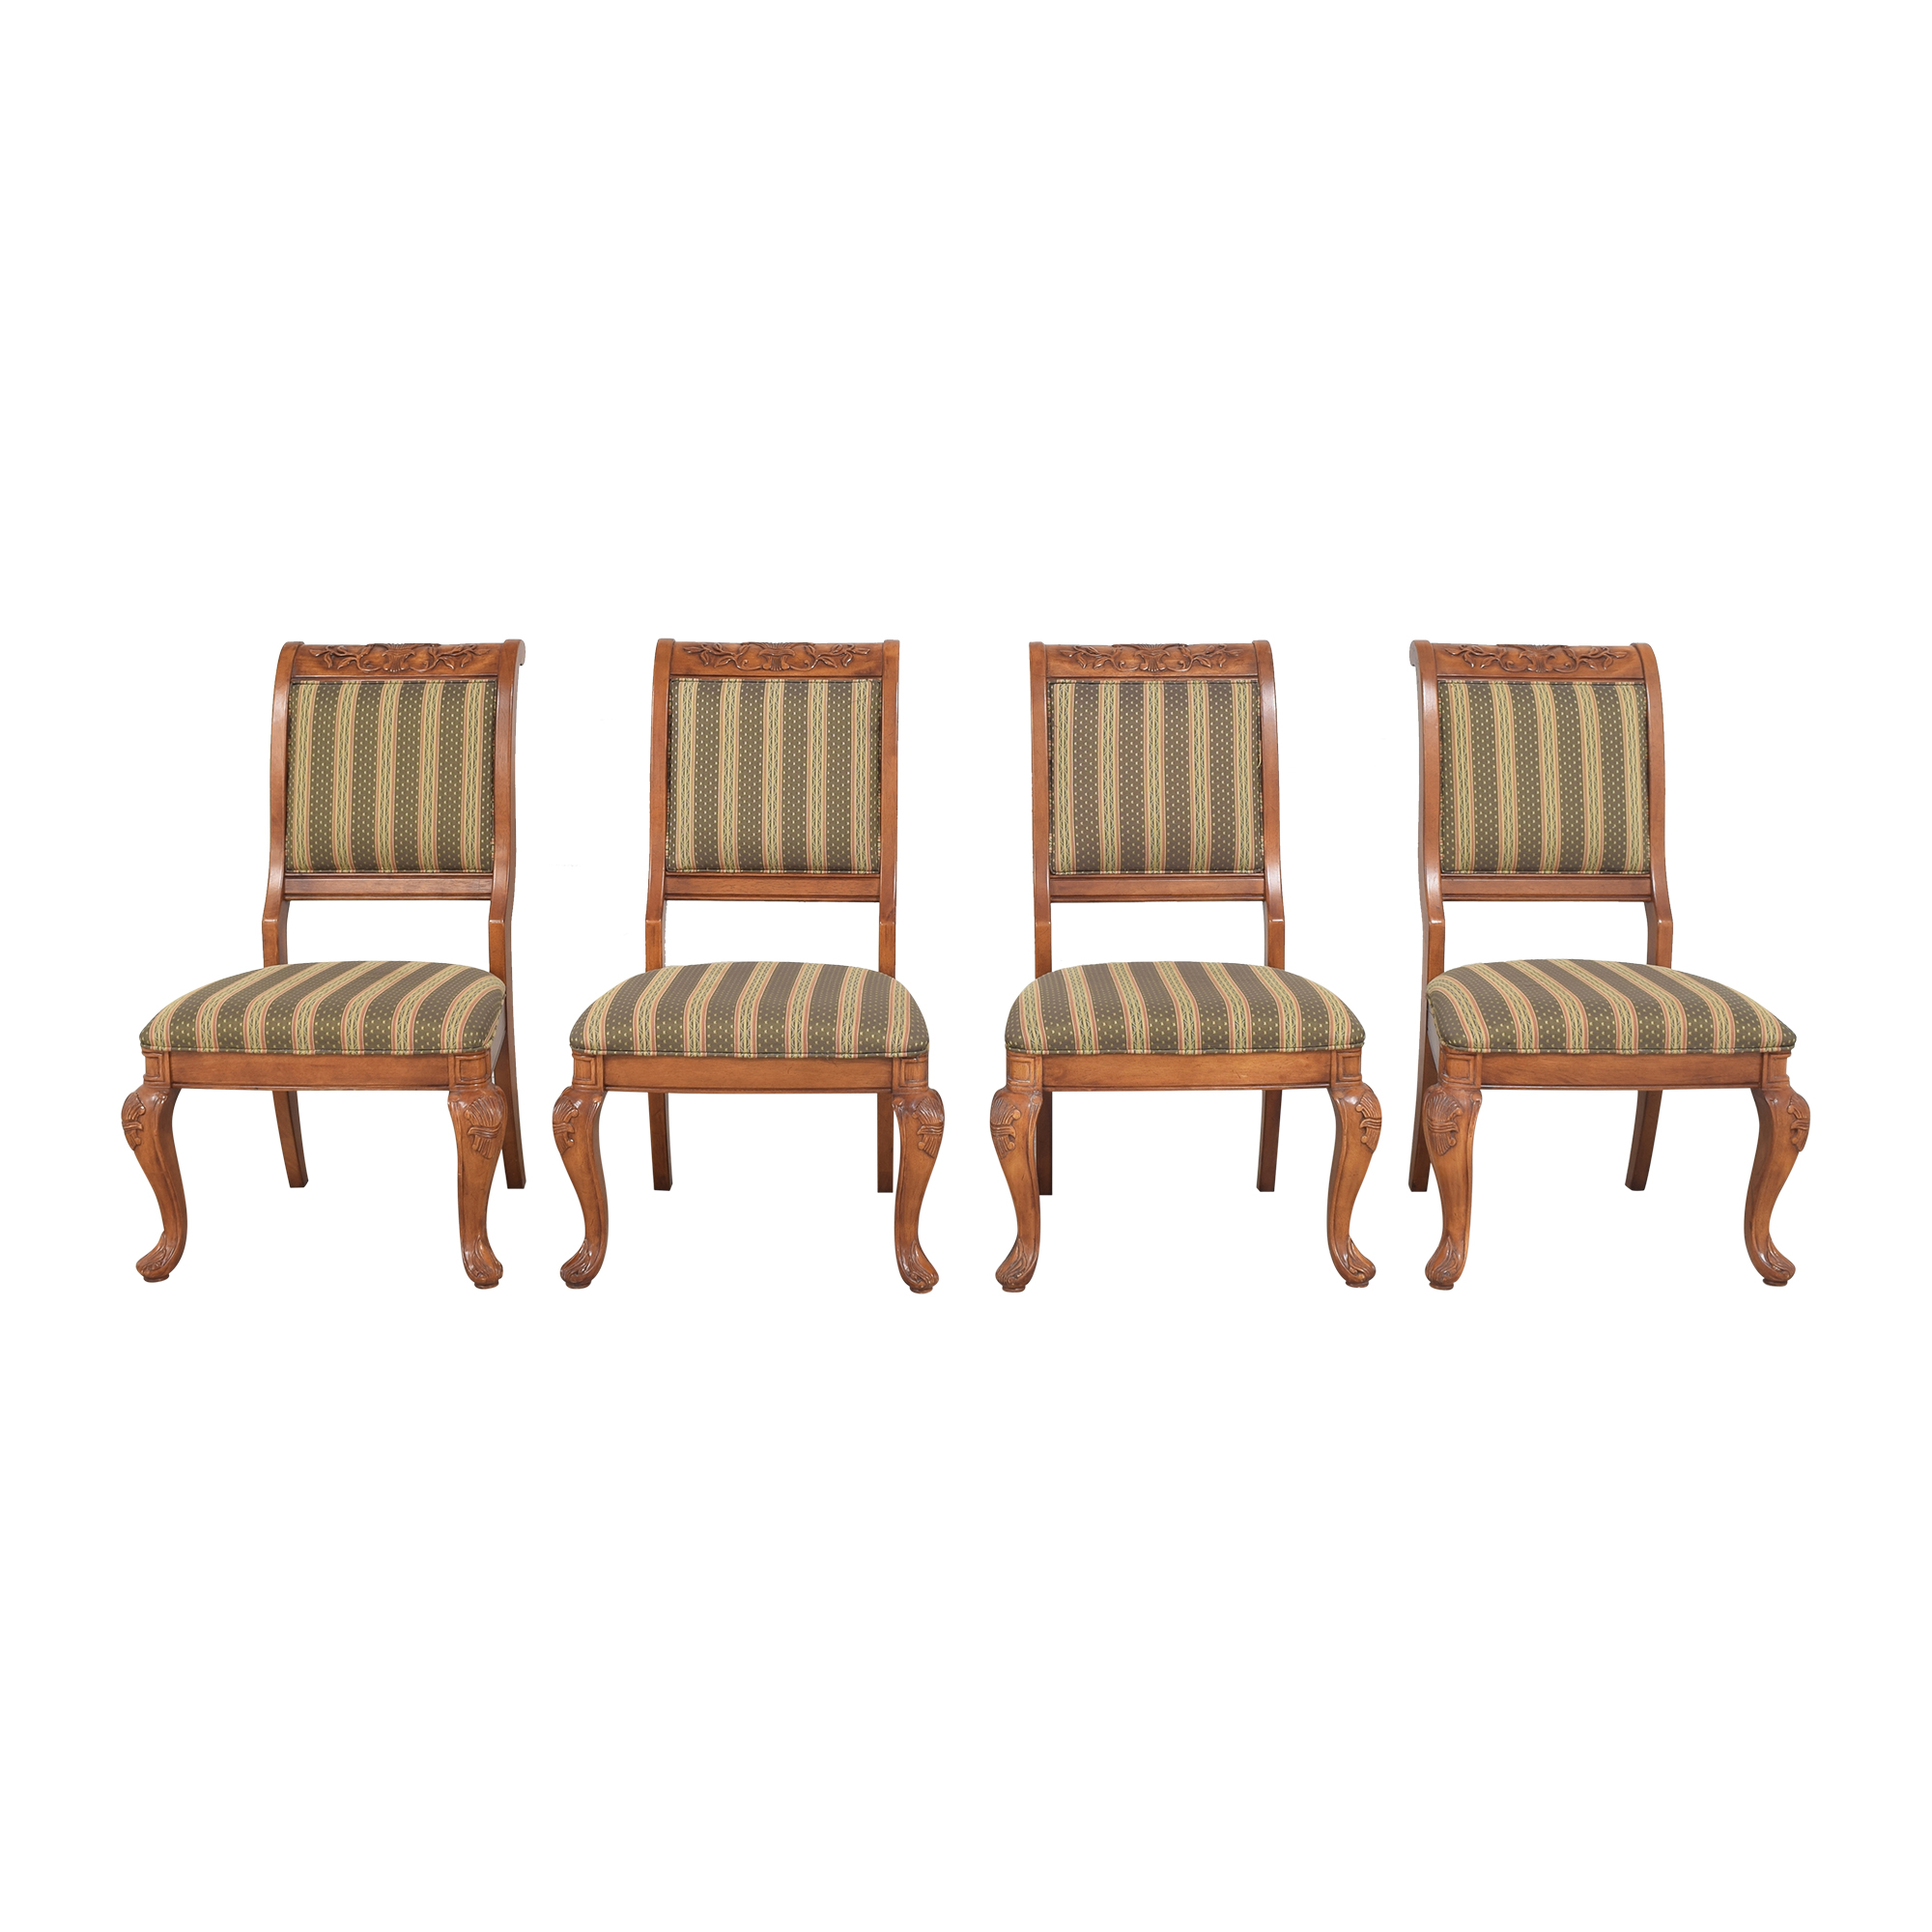 Hyundai Furniture Hyundai Stripe Dining Chairs discount